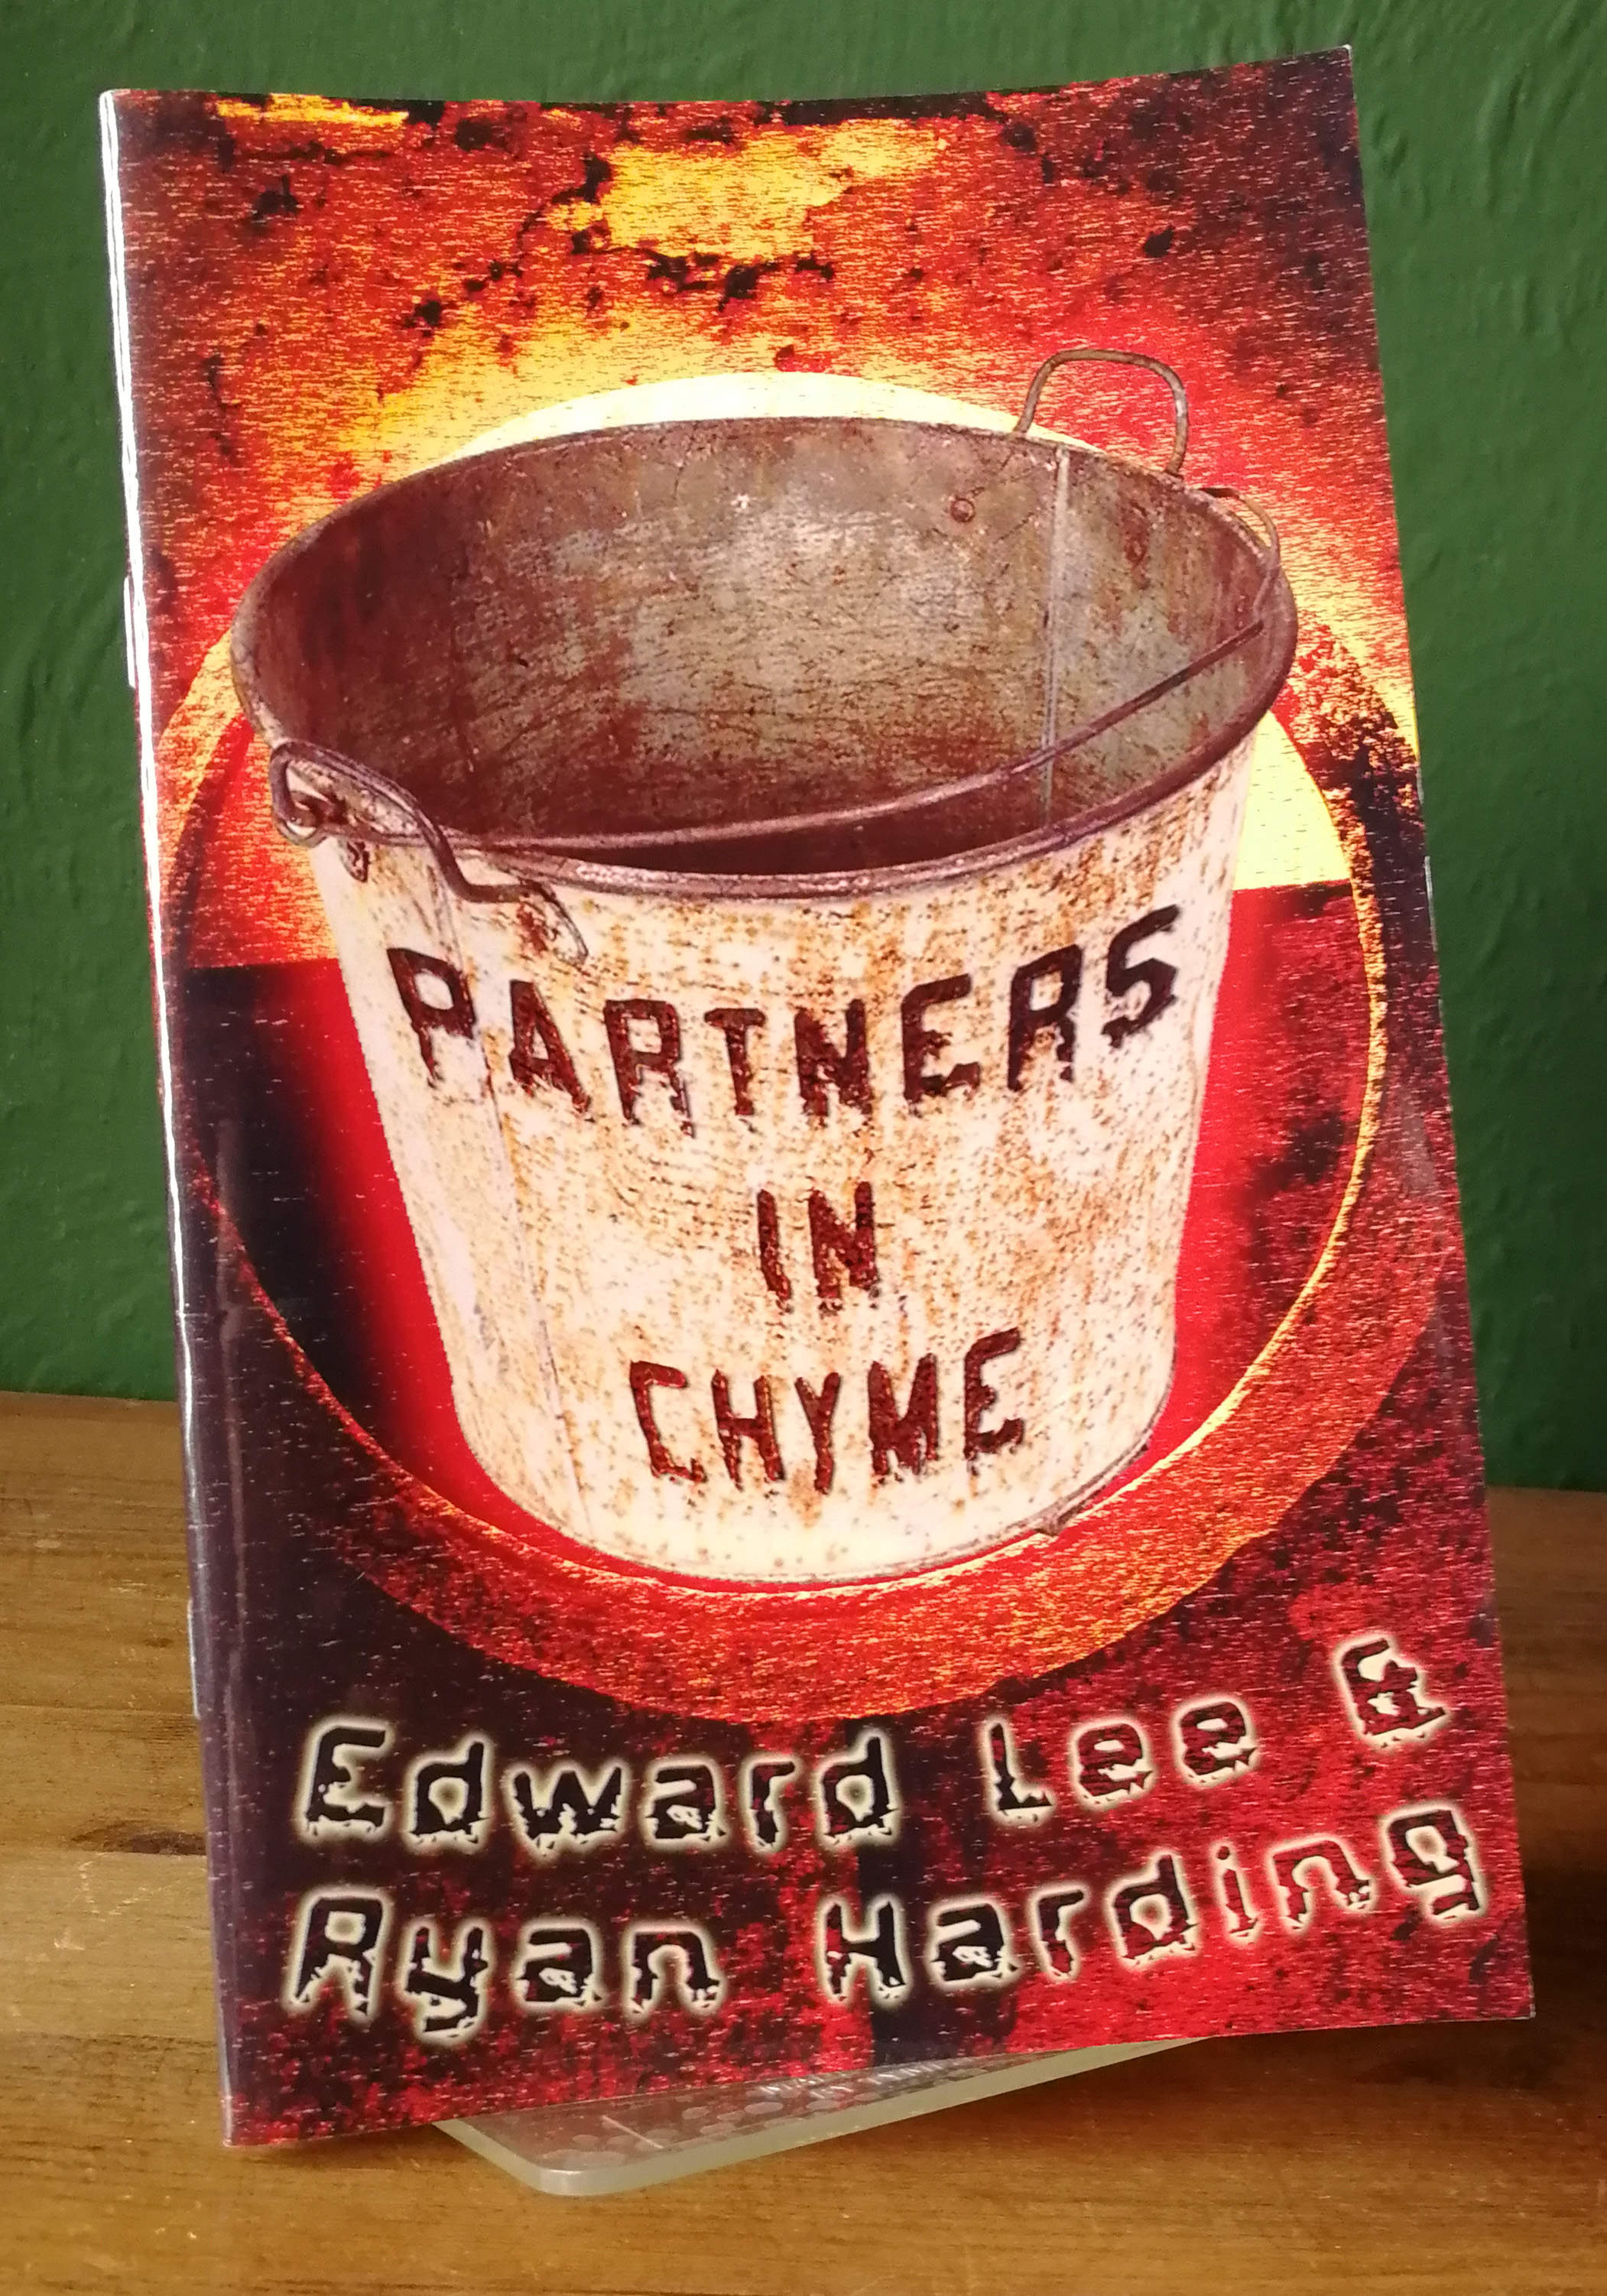 Partners In Chyme Signed Limited Edition